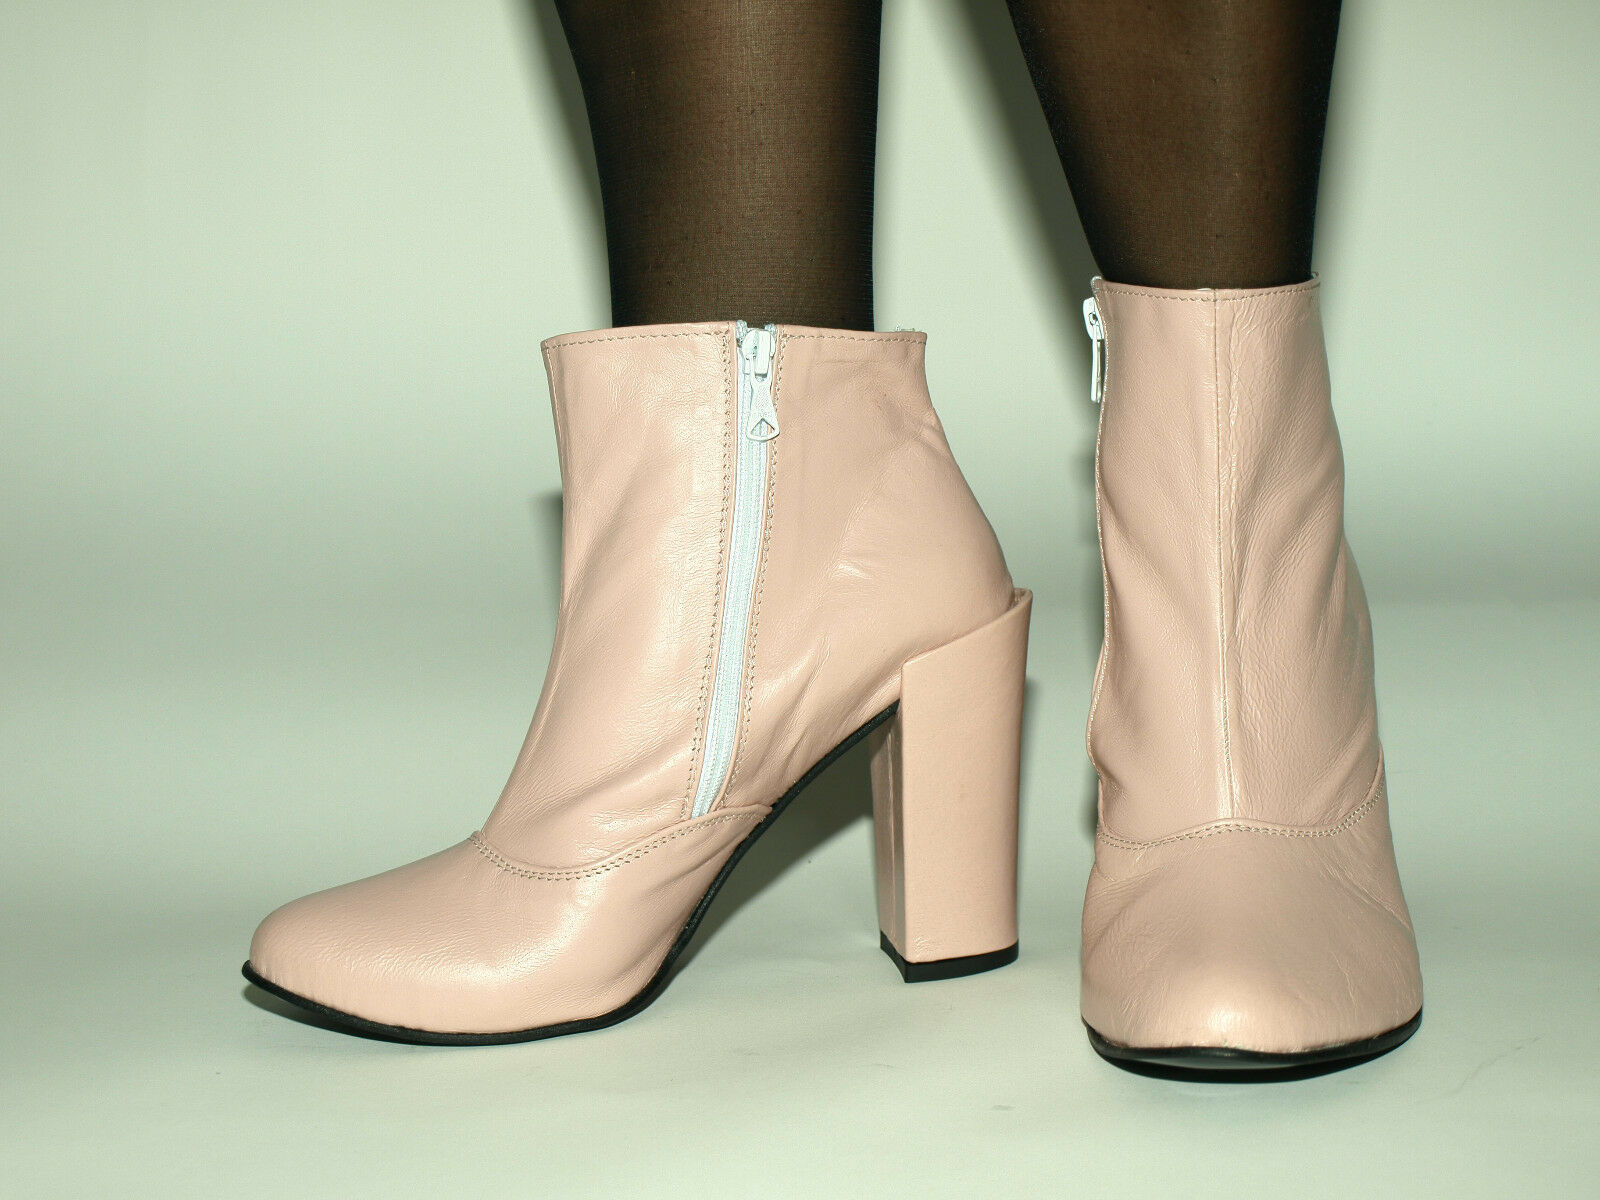 PINK LEATHER 100% HIGHS BOOTS SIZE 6-16 HEELS-4,5